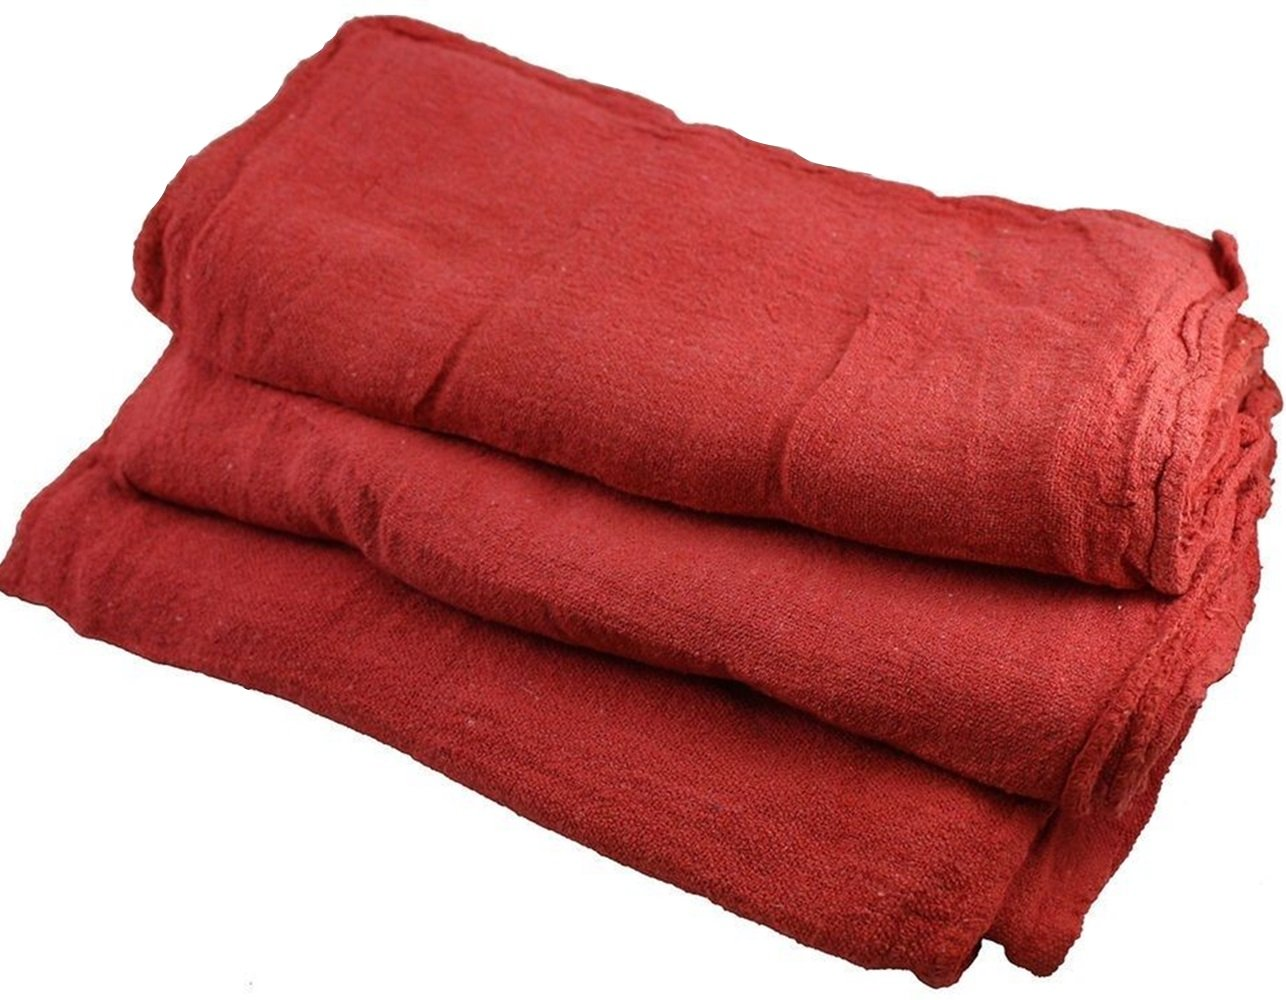 1000PC NEW INDUSTRIAL SHOP RAGS CLEANING TOWELS RED 14''x14'' GA TOWEL PREMIUM TKT-11